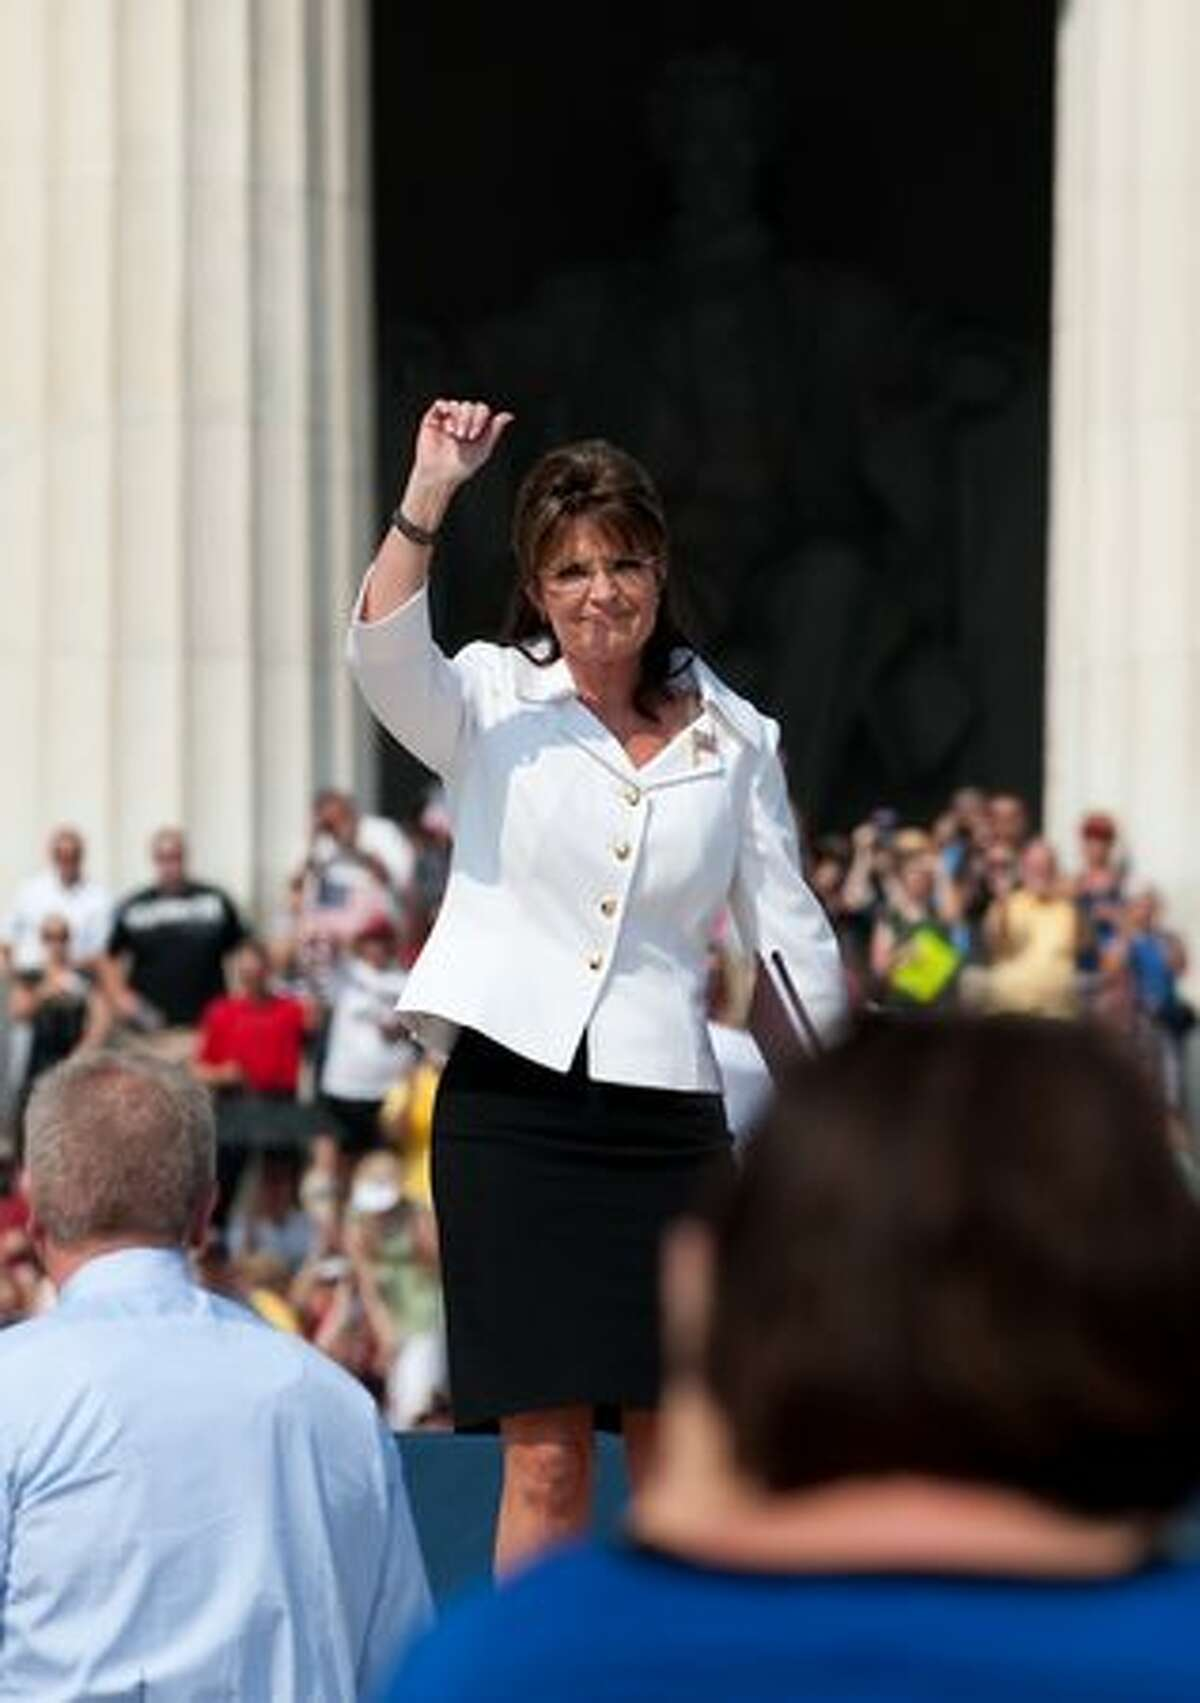 """Former Alaska governor Sarah Palin arrives to speak at a rally dubbed """"Restoring Honor,"""" to show support of the US military, organized by conservative US radio and television commentator Glenn Beck, one of the de facto leaders of the Tea Party movement at the Lincoln Memorial in Washington, DC, on August 28, 2010. The rally has attracted controversy because it is being held on the 47th anniversary of civil rights legend Martin Luther King Jr.'s """"I Have a Dream"""" speech, at the Lincoln Memorial on the National Mall, where King spoke. AFP PHOTO/Nicholas KAMM"""